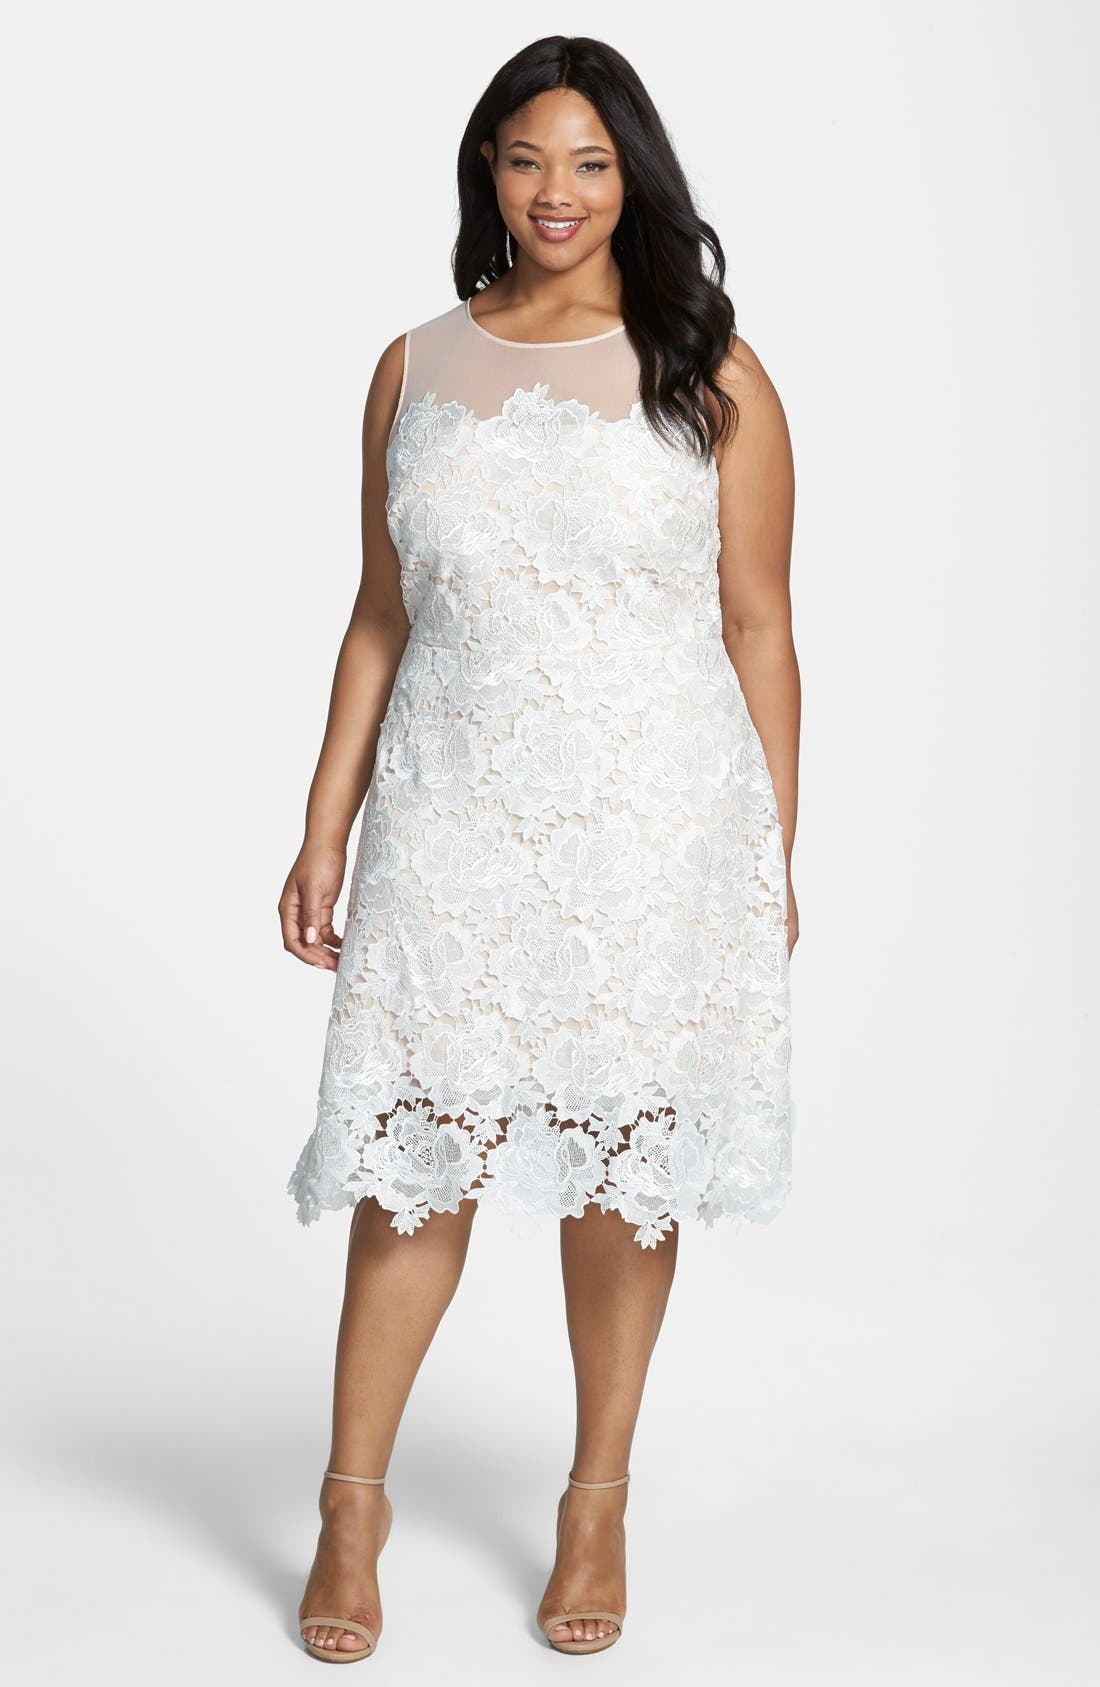 Alternate Image 1 Selected - Julia Jordan Floral Lace Sleeveless Sheath Dress (Plus Size)